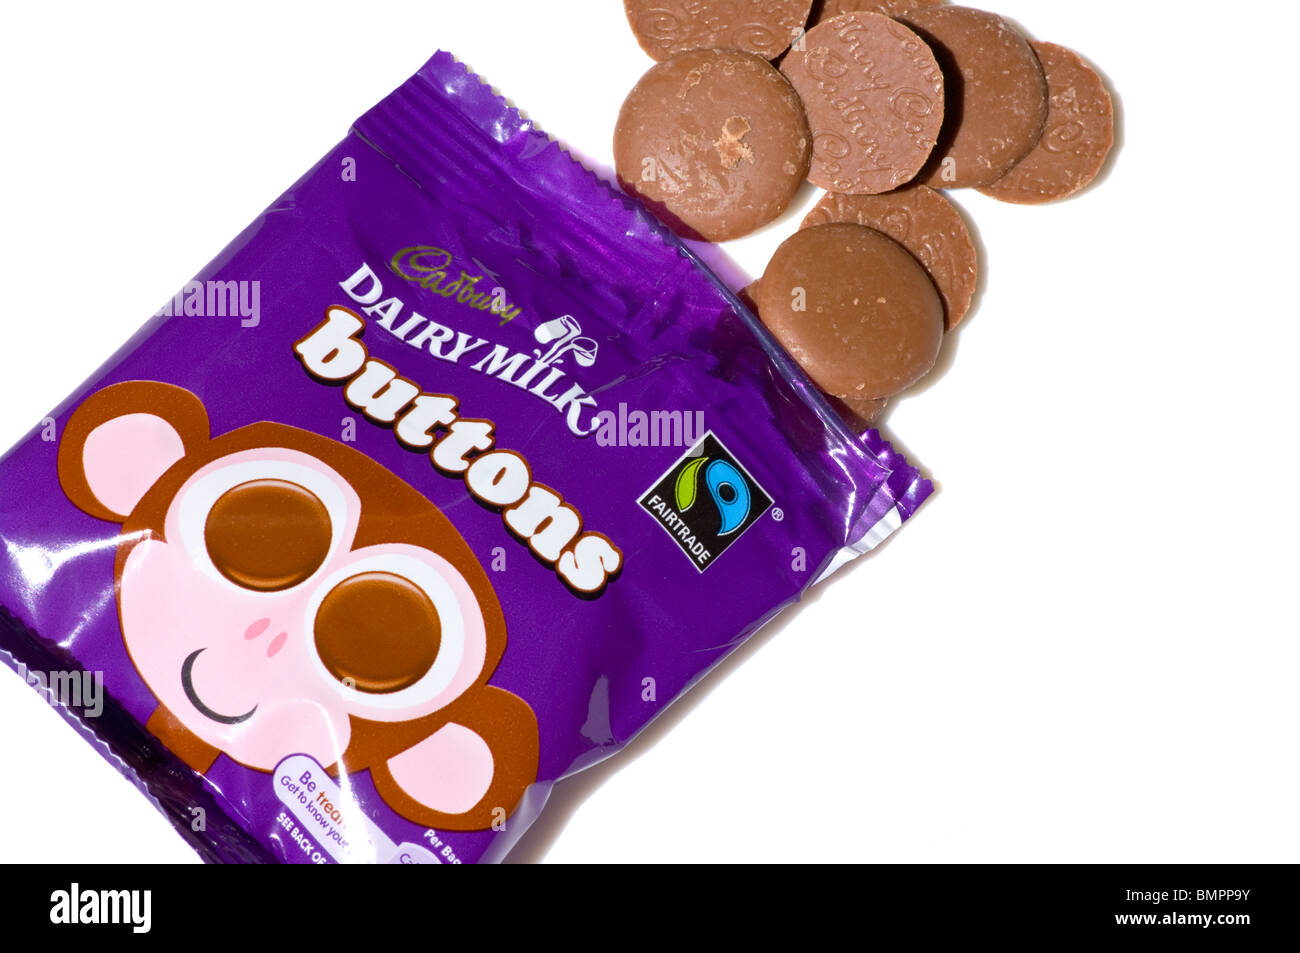 Bag Of Cadbury Dairy Milk Chocolate Buttons Isolated Against